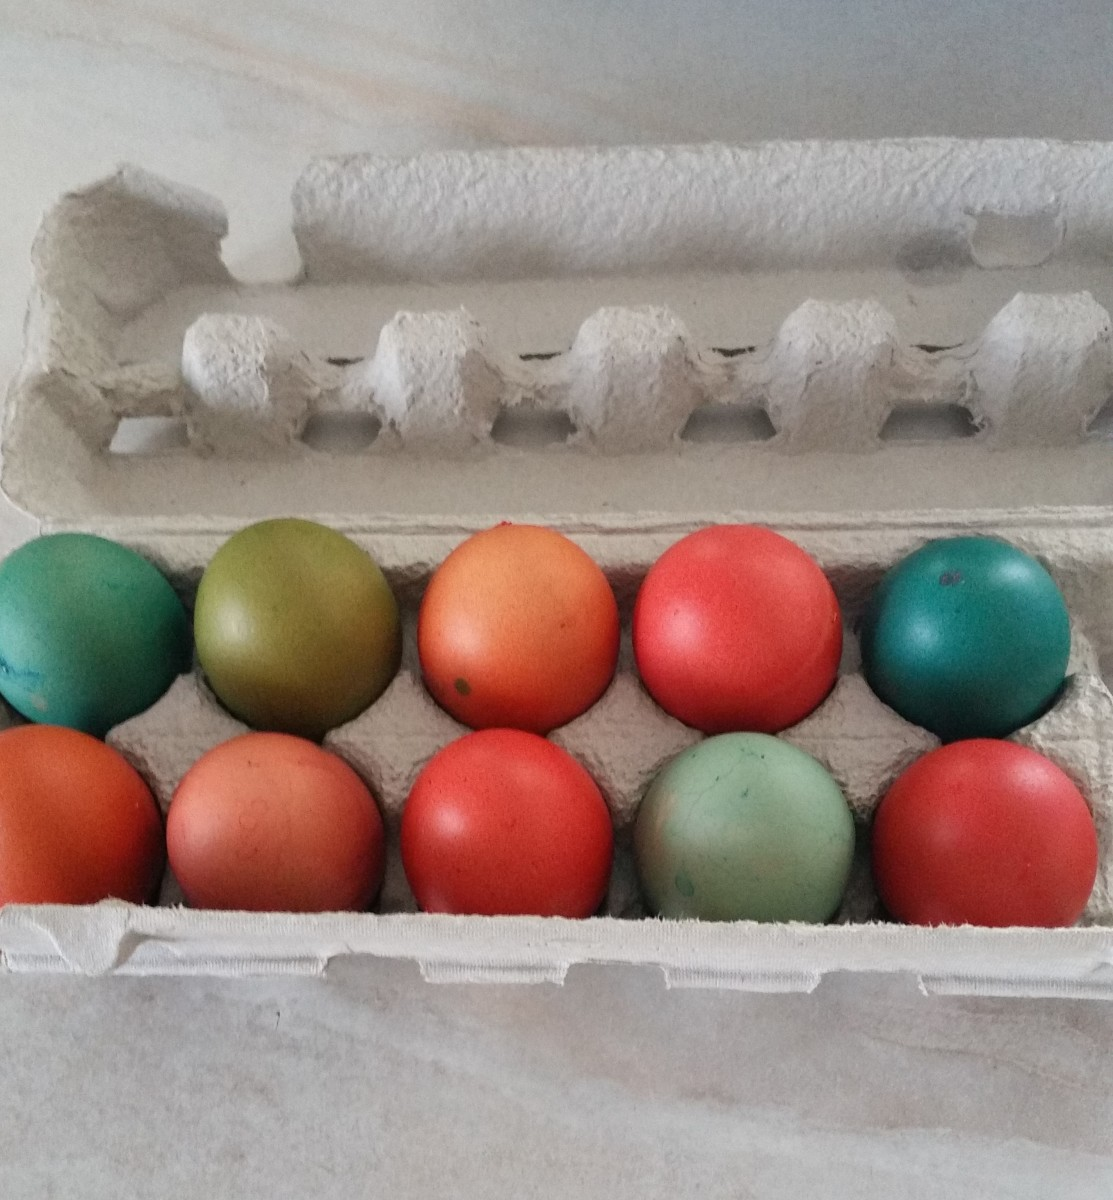 These vibrantly coloured hard-boiled eggs are ready to be cracked and peeled!